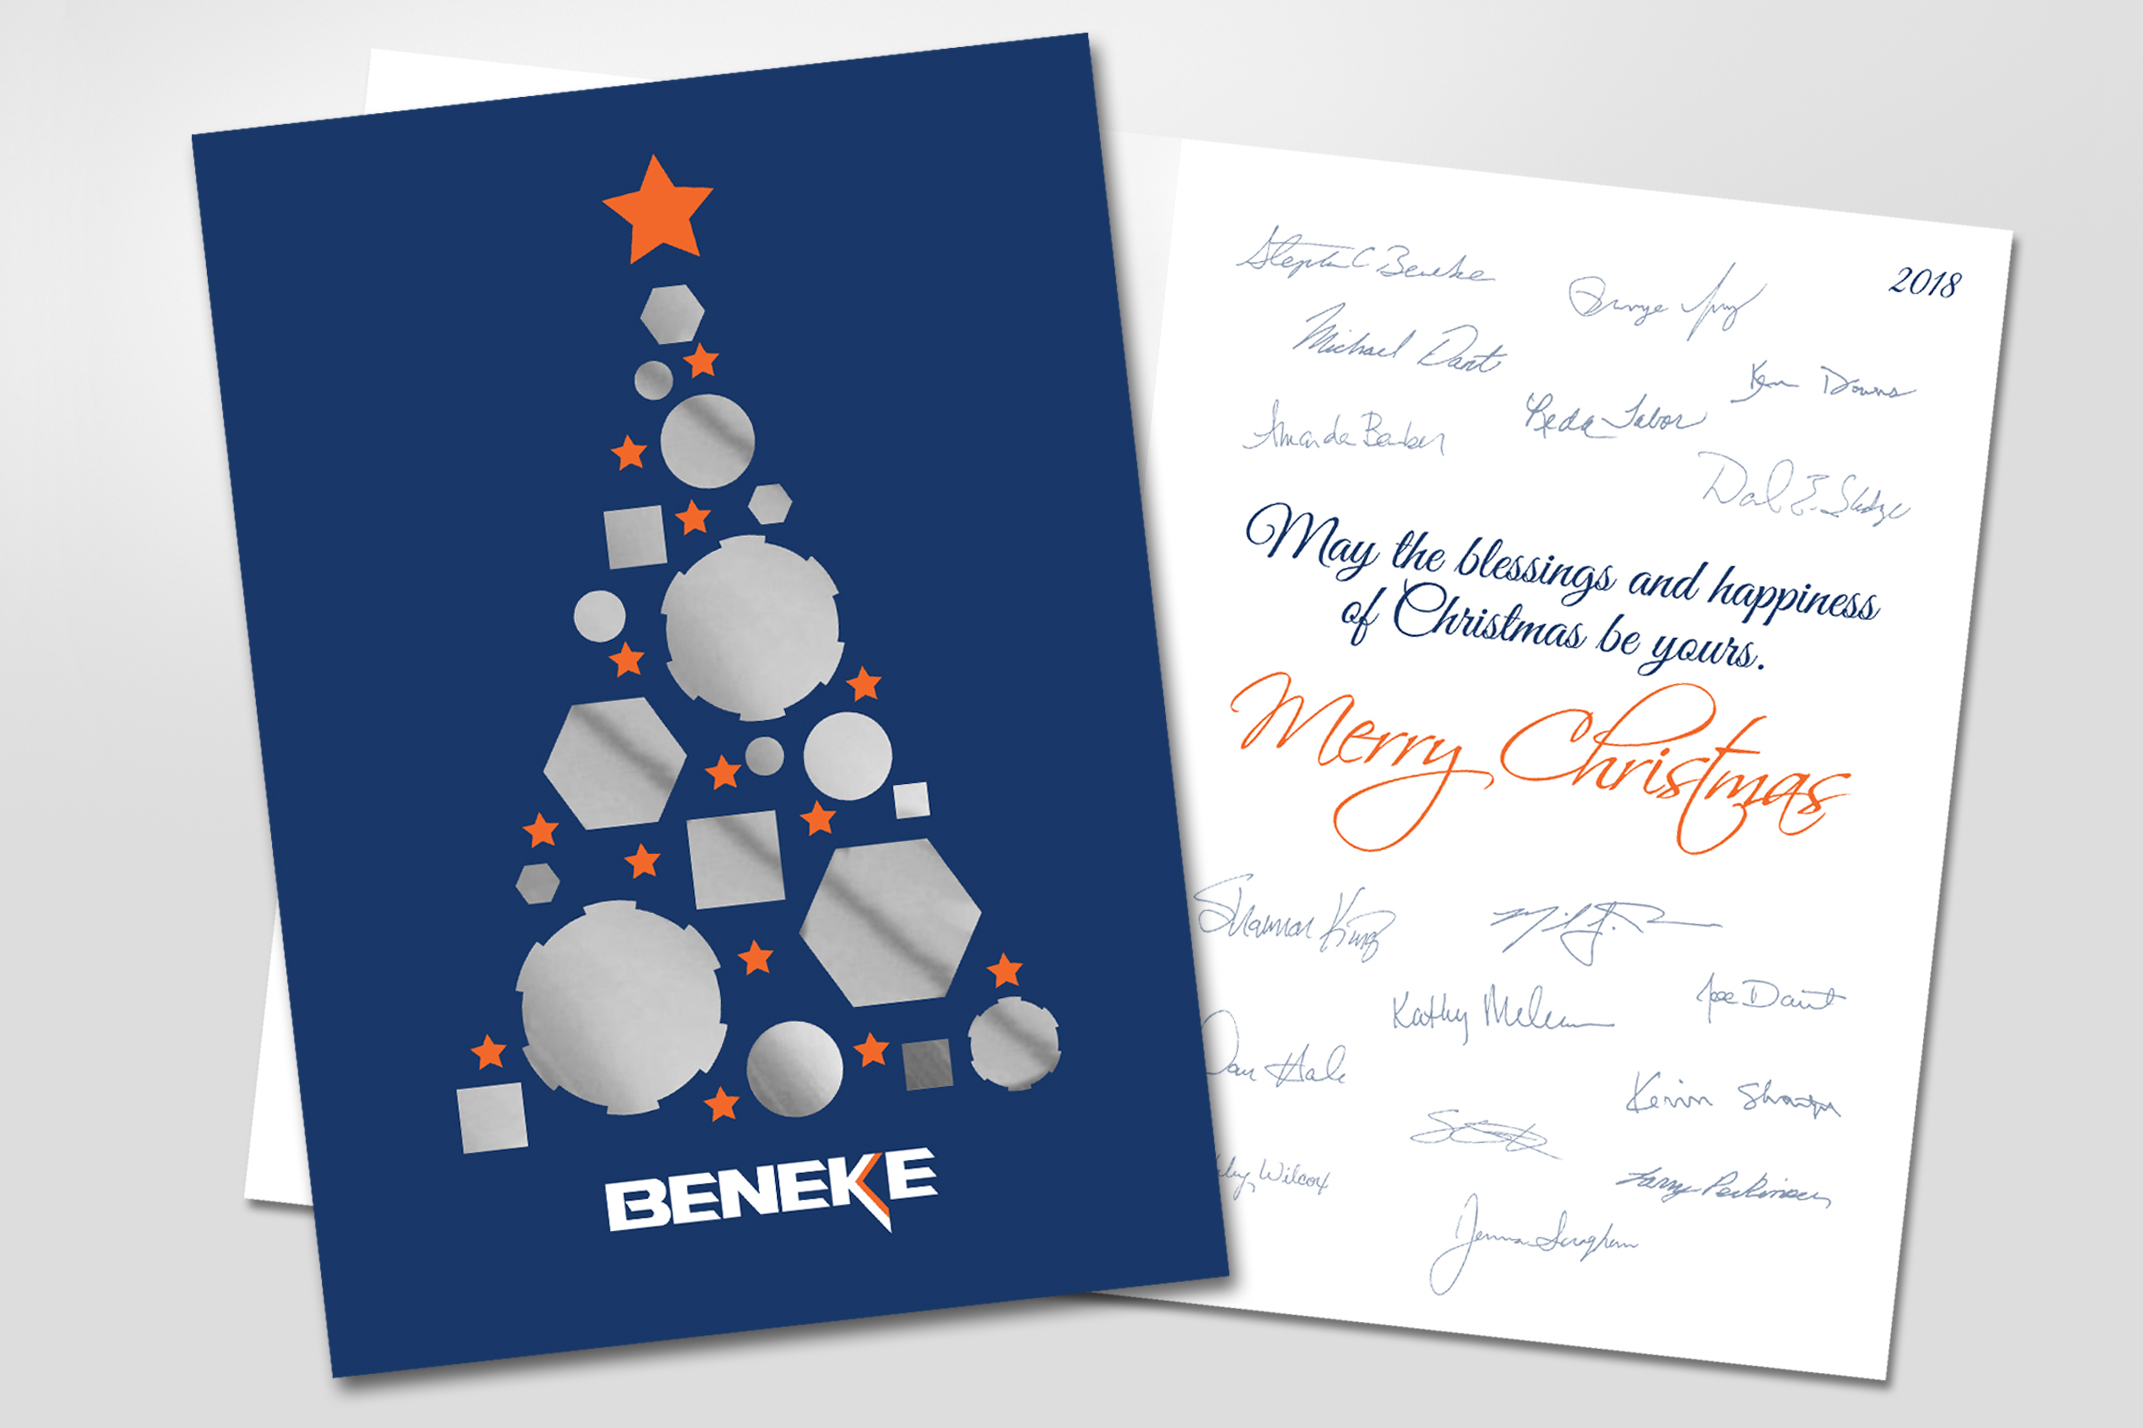 Beneke Christmas Card 2018_4x6